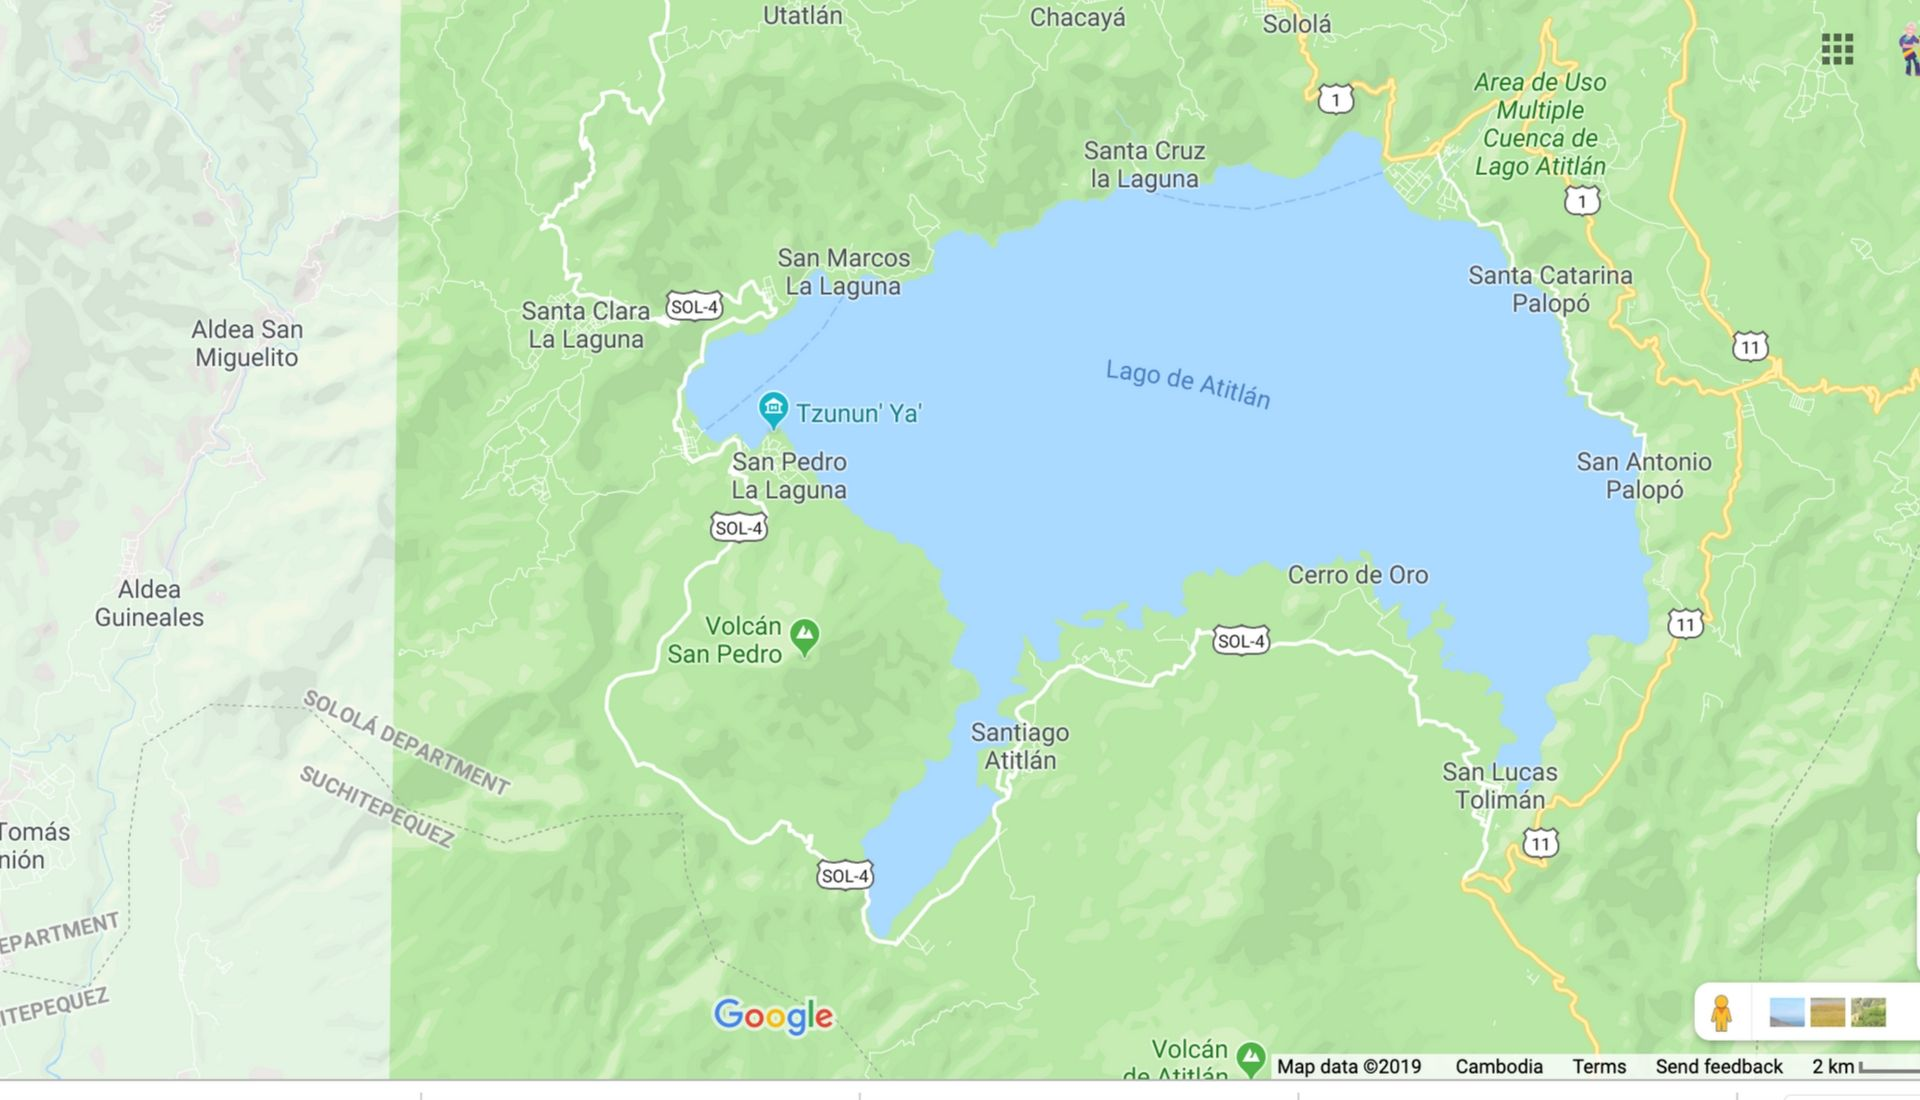 Map of the villages around Lake Atitlan